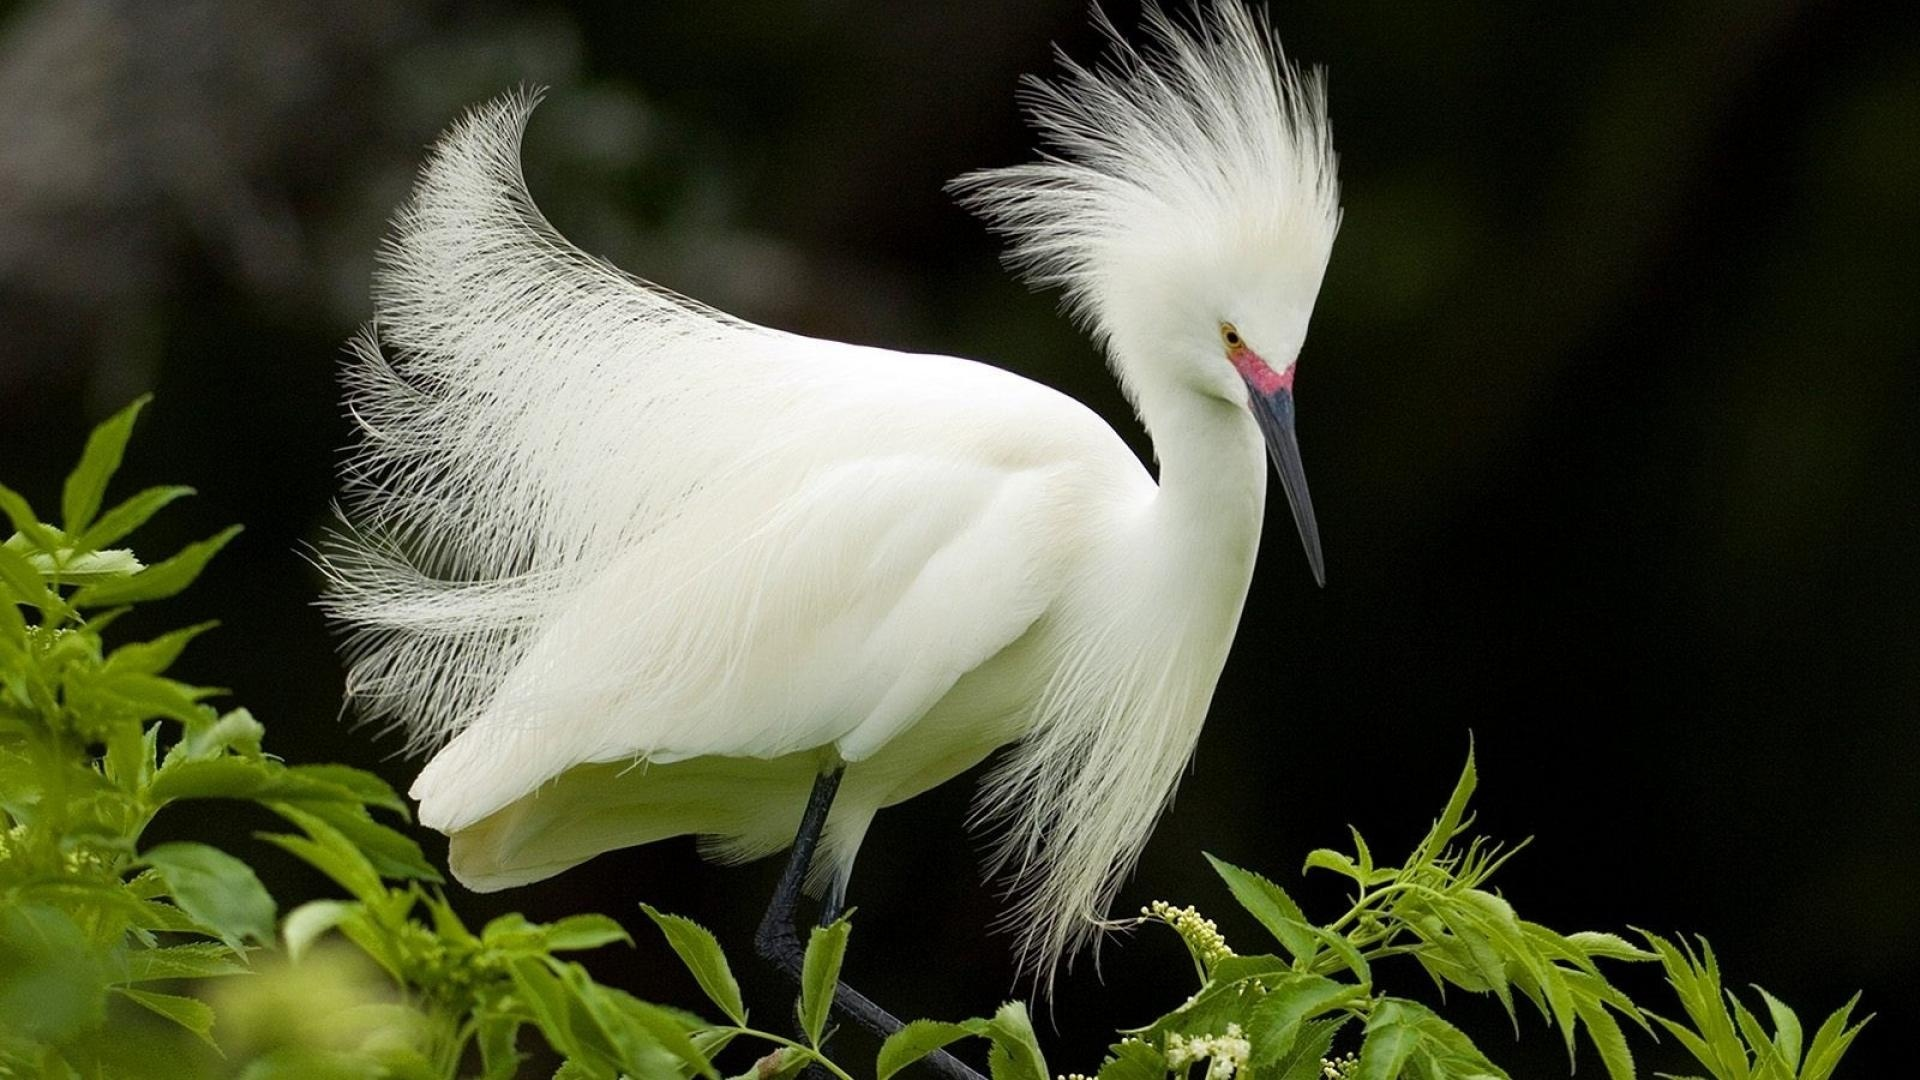 Snowy White Egret Bird